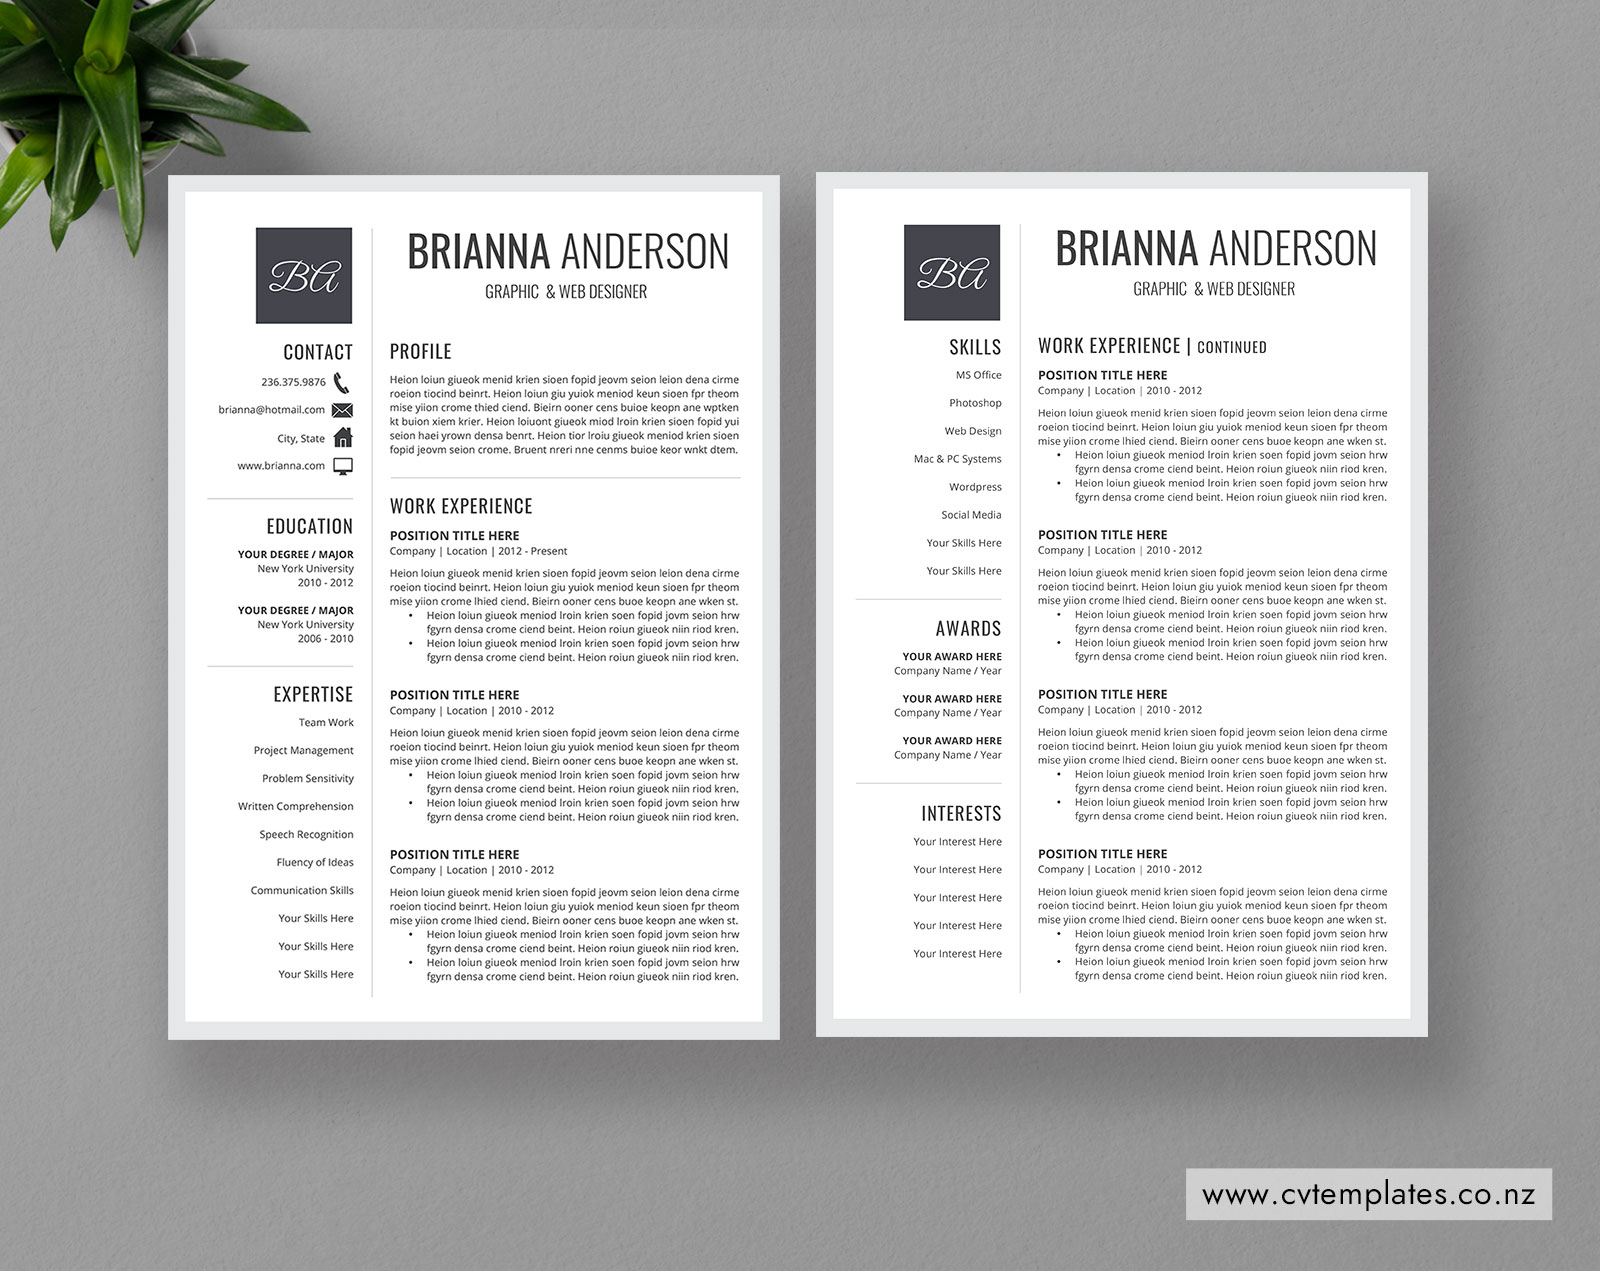 Cv Template For Ms Word Professional Curriculum Vitae 1 2